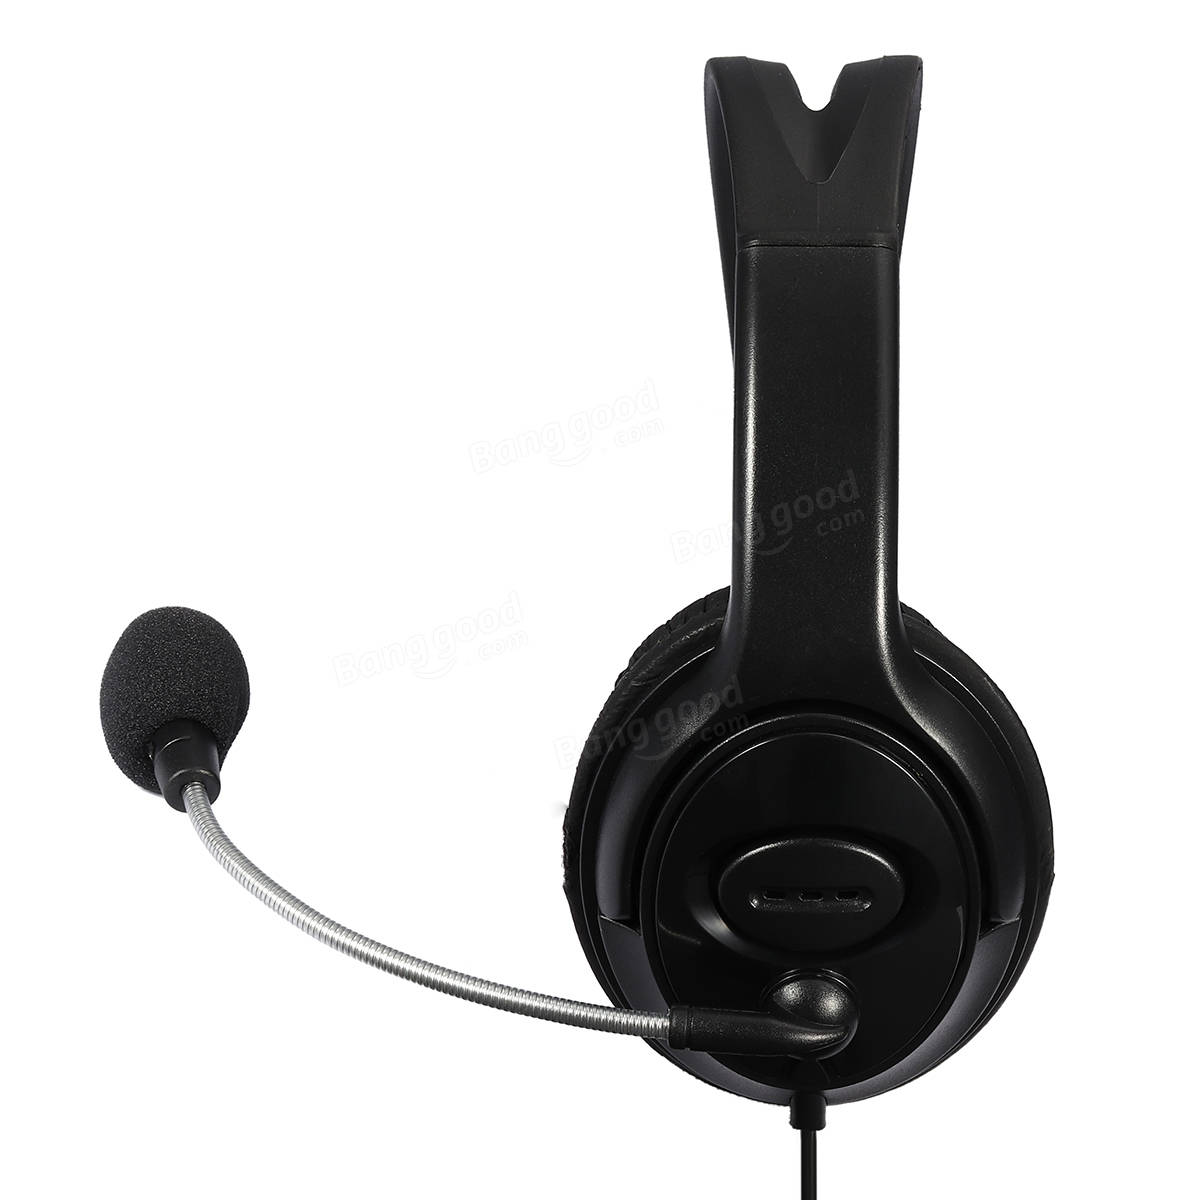 Xbox one headphones bass boost - headphones with microphone xbox 1